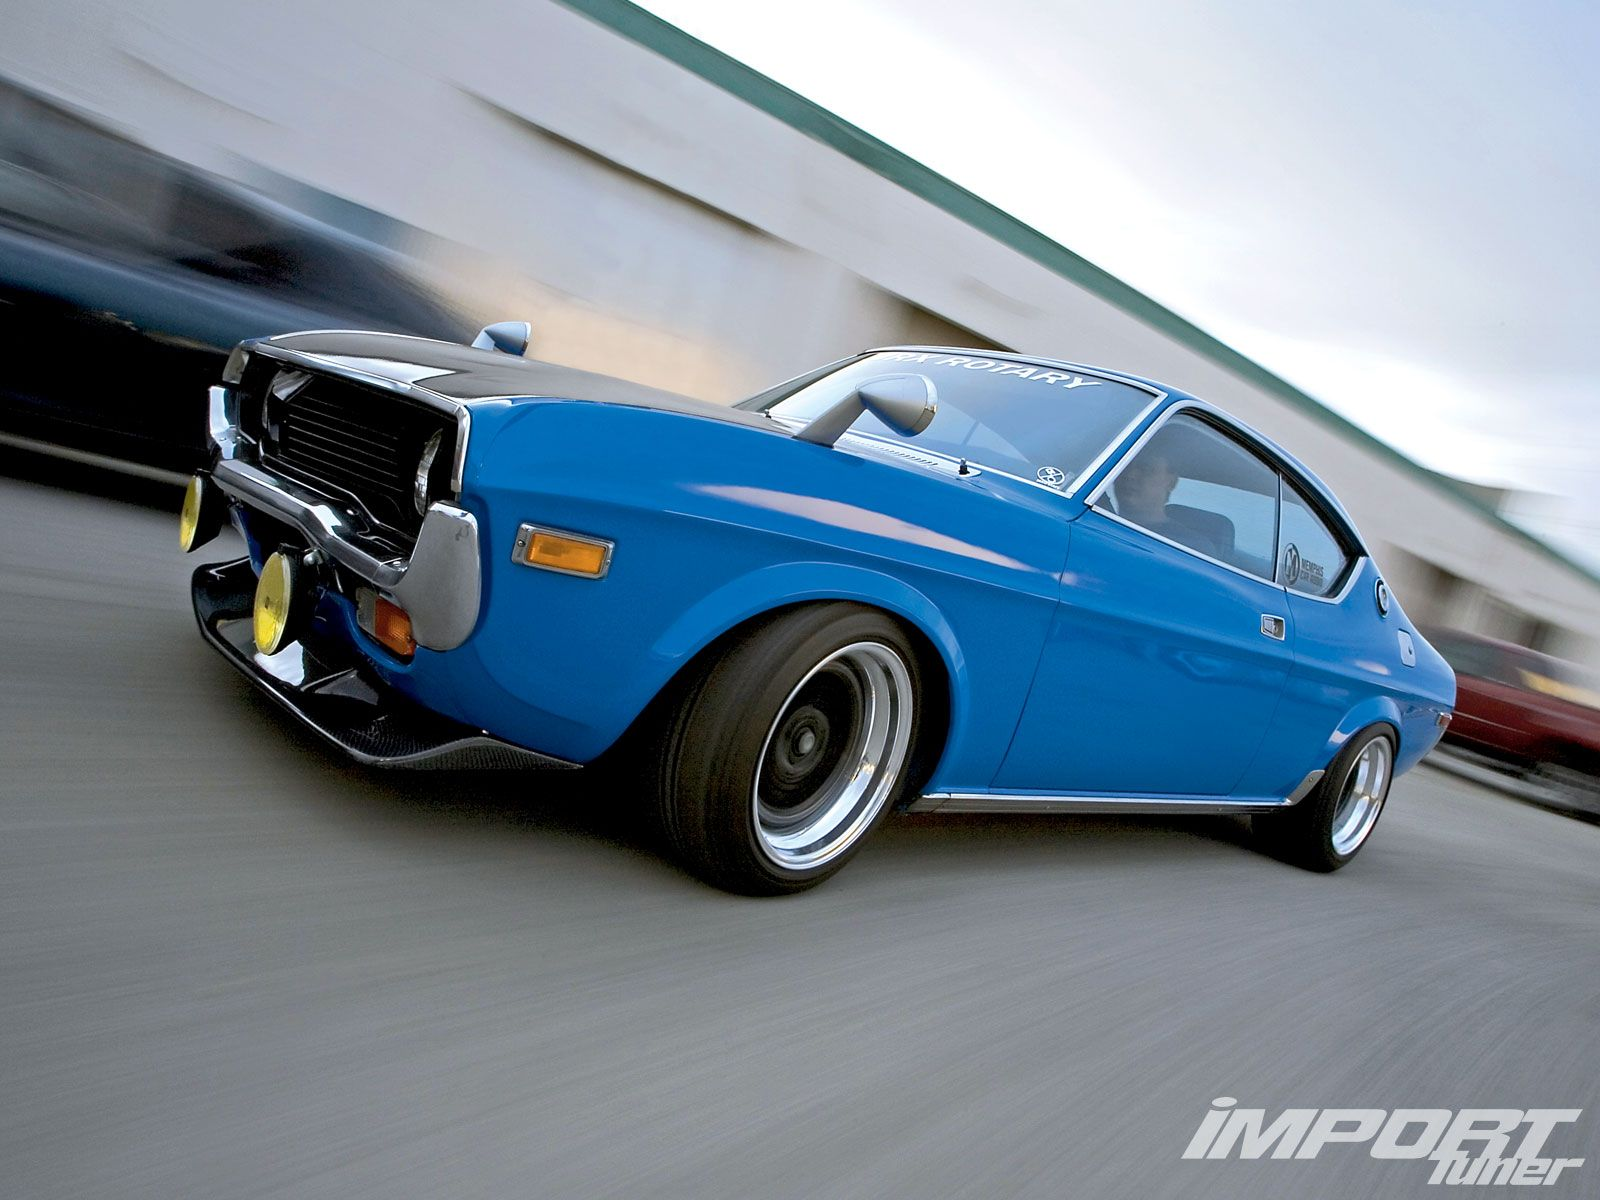 Mazda RX3 | Classic JDM | Pinterest | Mazda, Japanese cars and Jdm